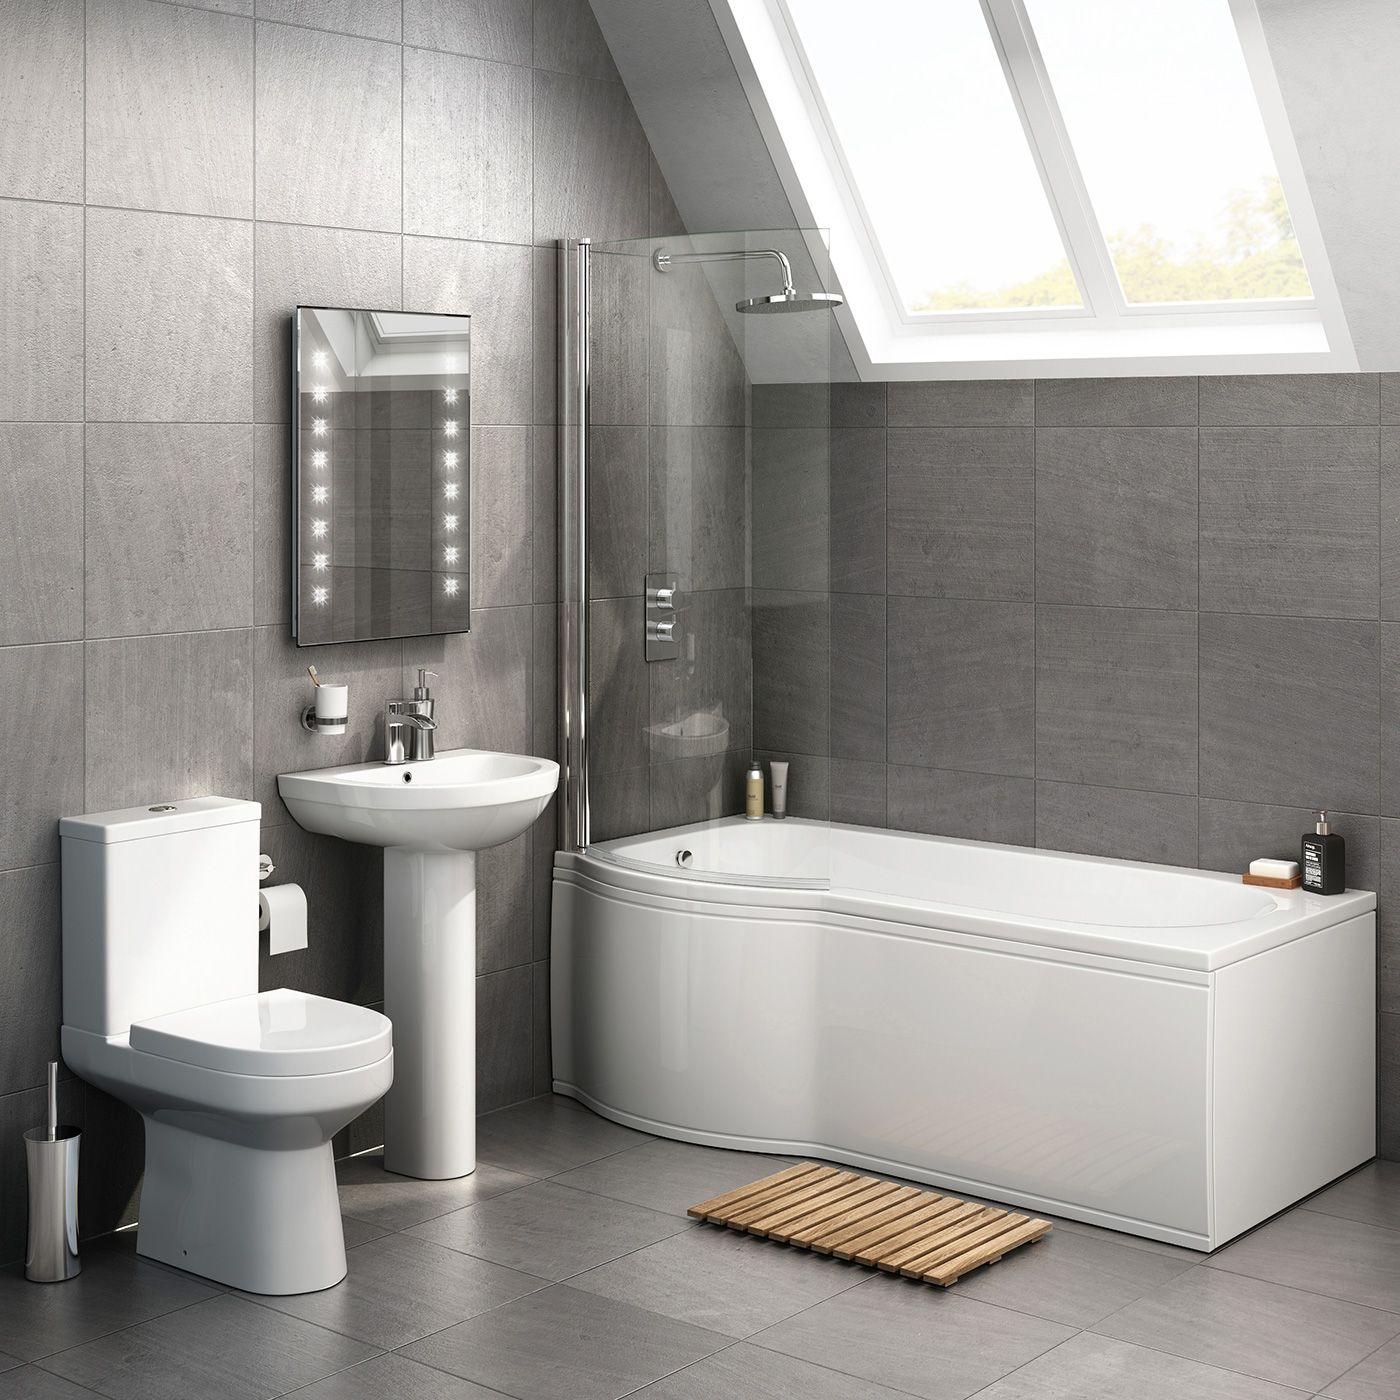 Are You Looking For The Bathroom Of Your Dreams Stunning At Low Prices With Next Day Delivery Available Shower Bath Home Depot Bathroom Bathroom Suites